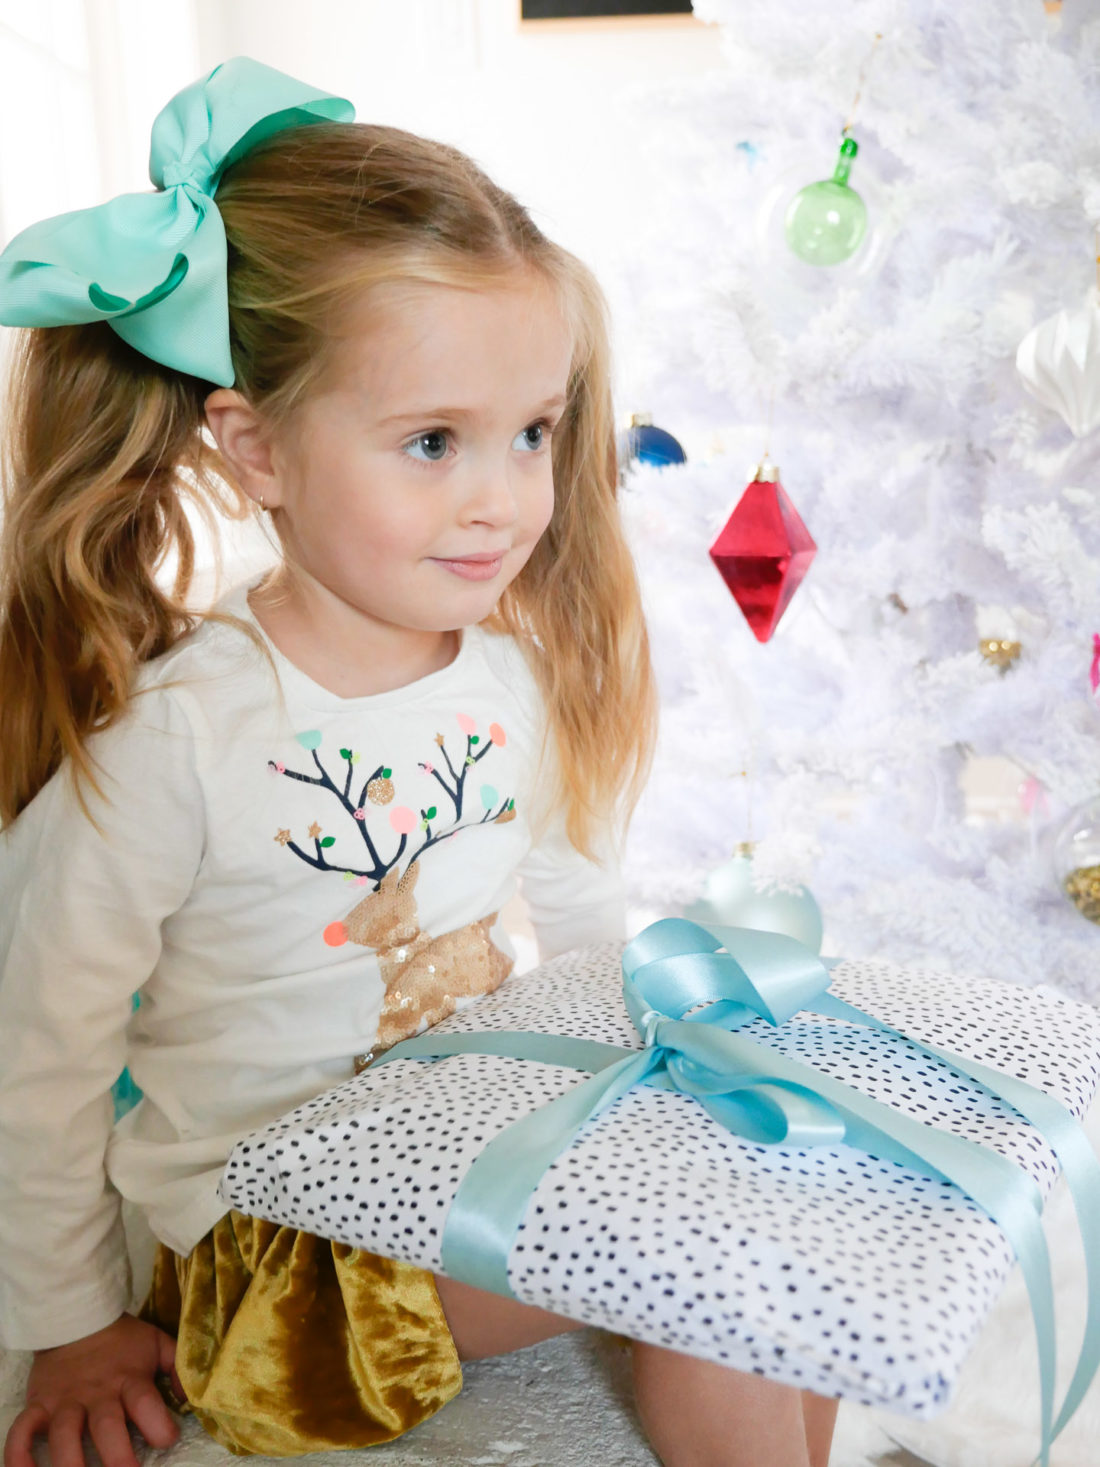 Marlowe Martino is pictured with a wrapped gift in the family room of her connecticut home